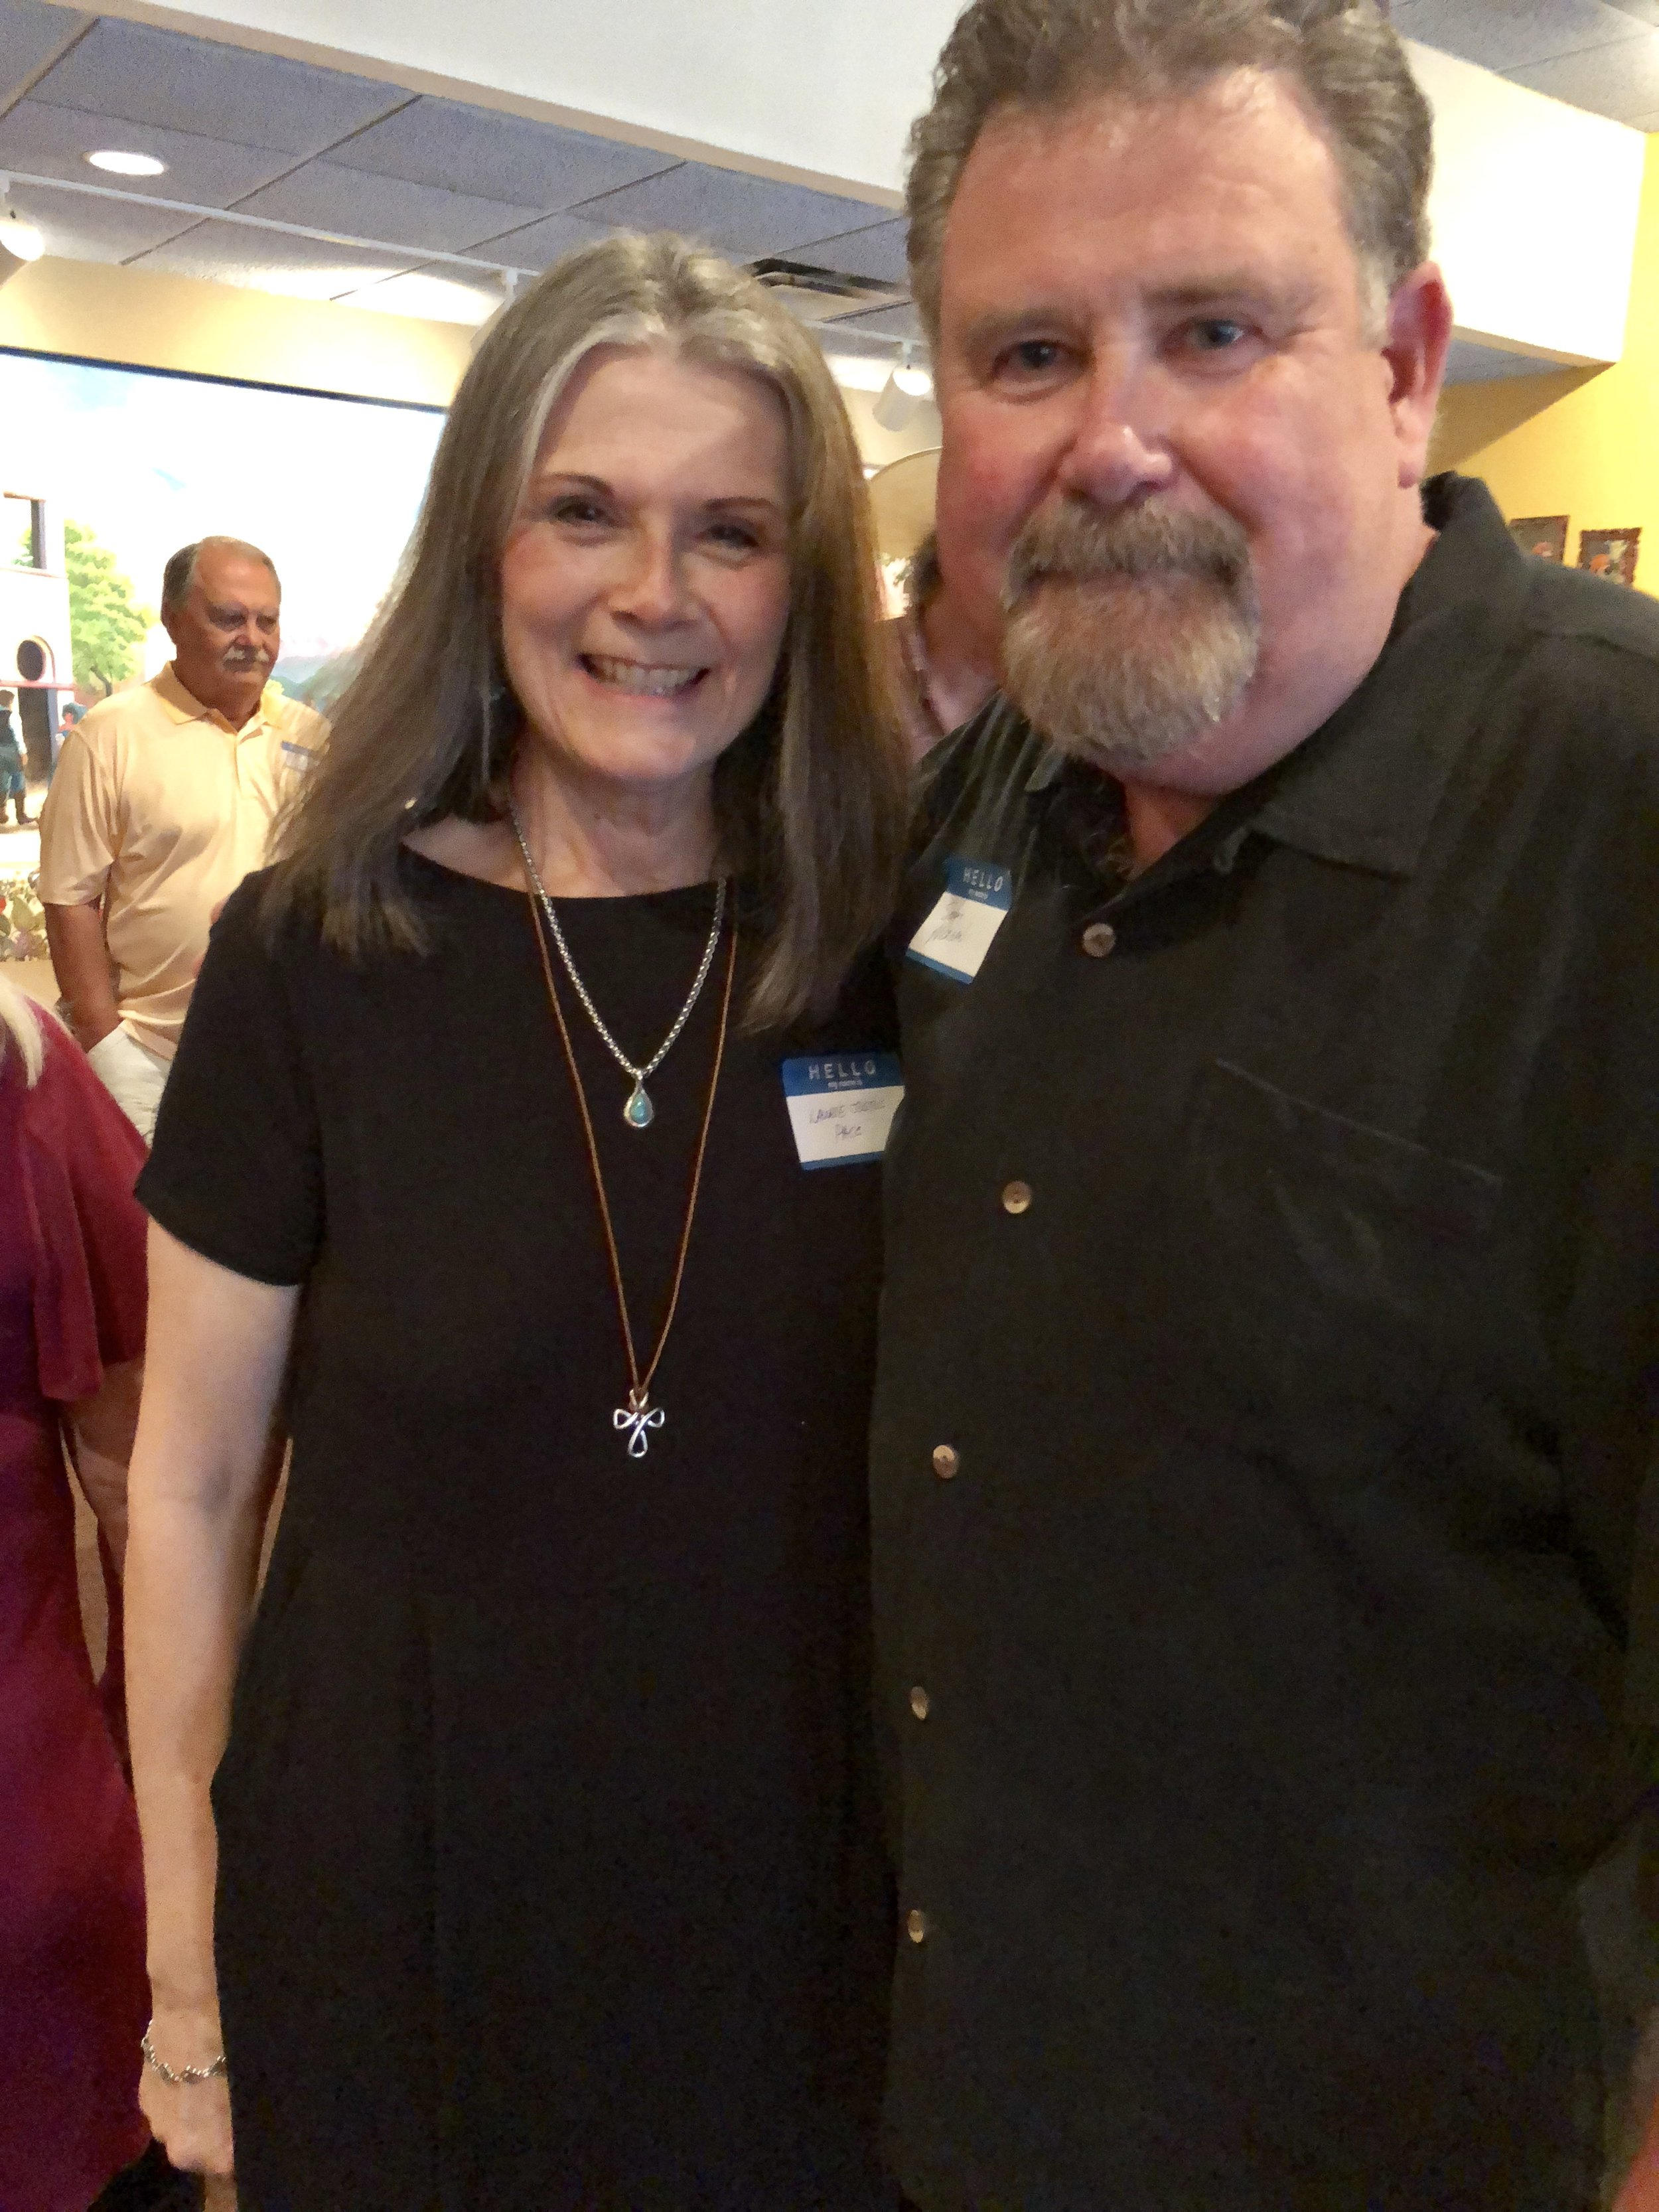 Laurie Justus Pace and Sonny Morgan